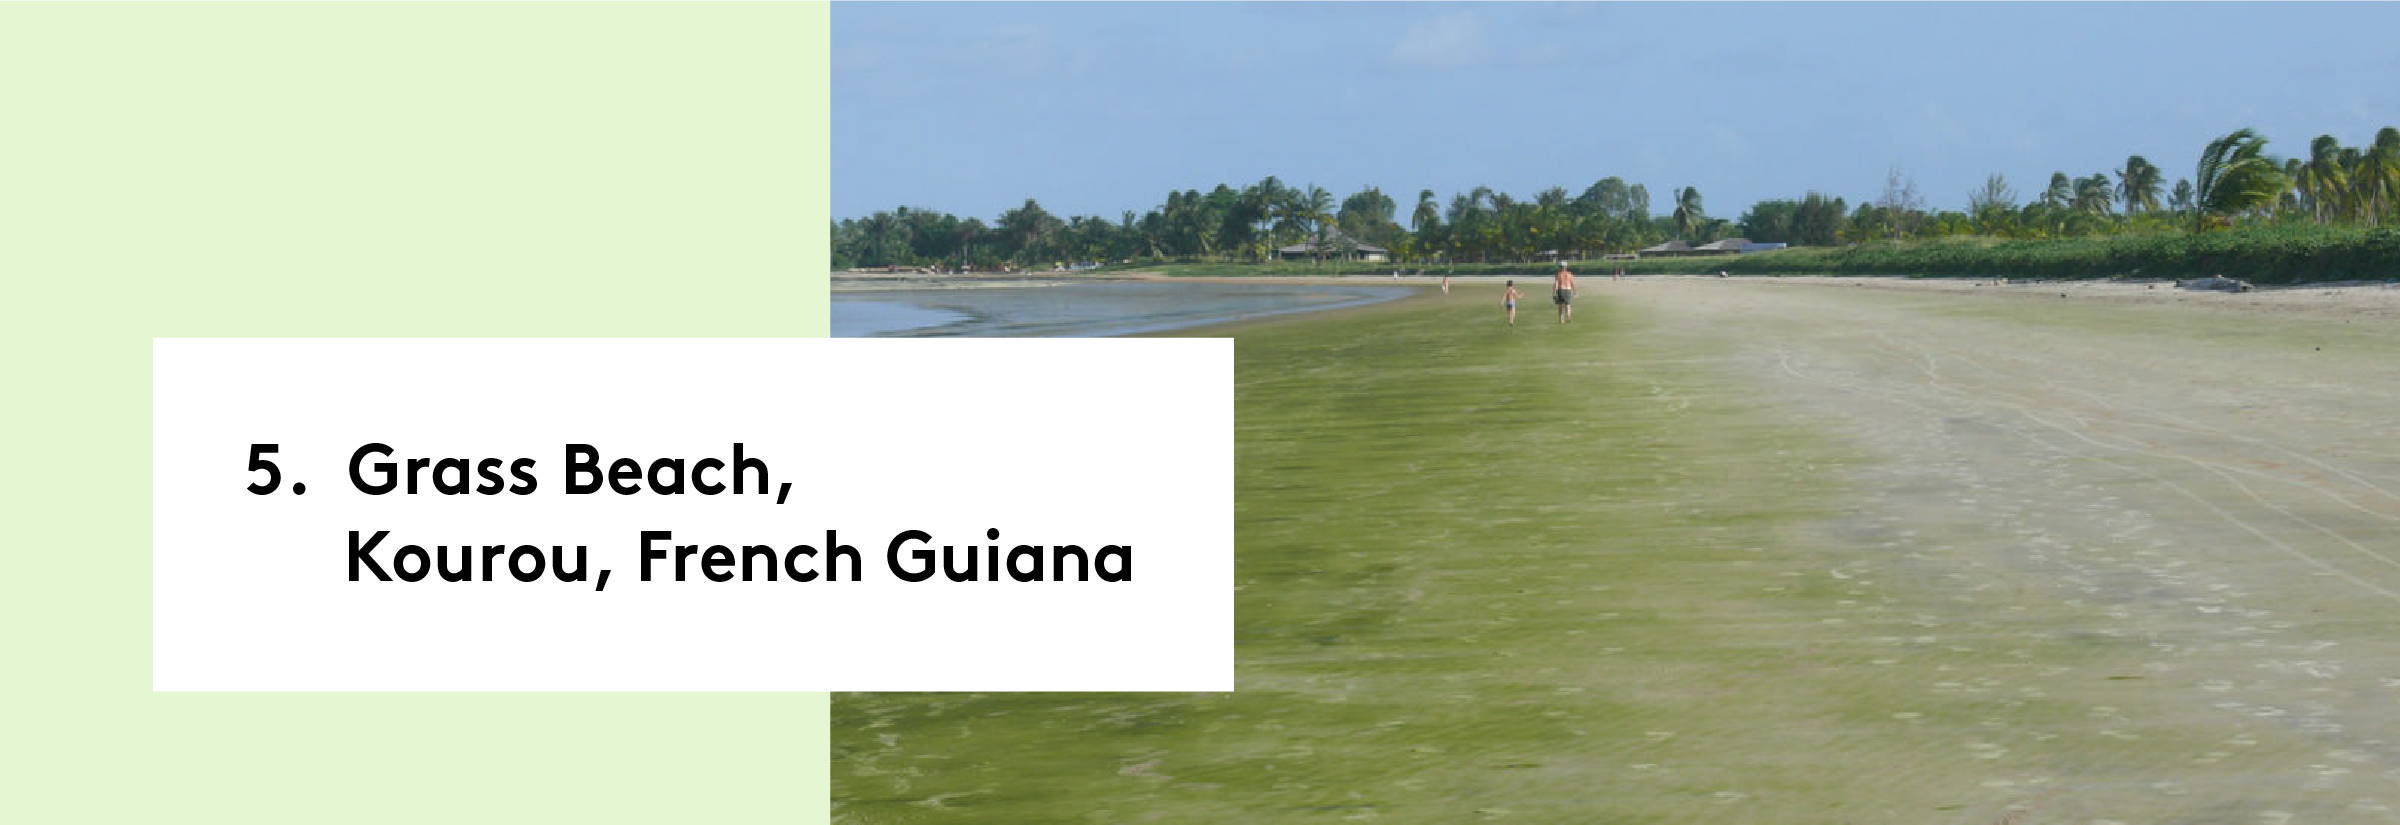 Grass Beach, Kourou, French Guiana